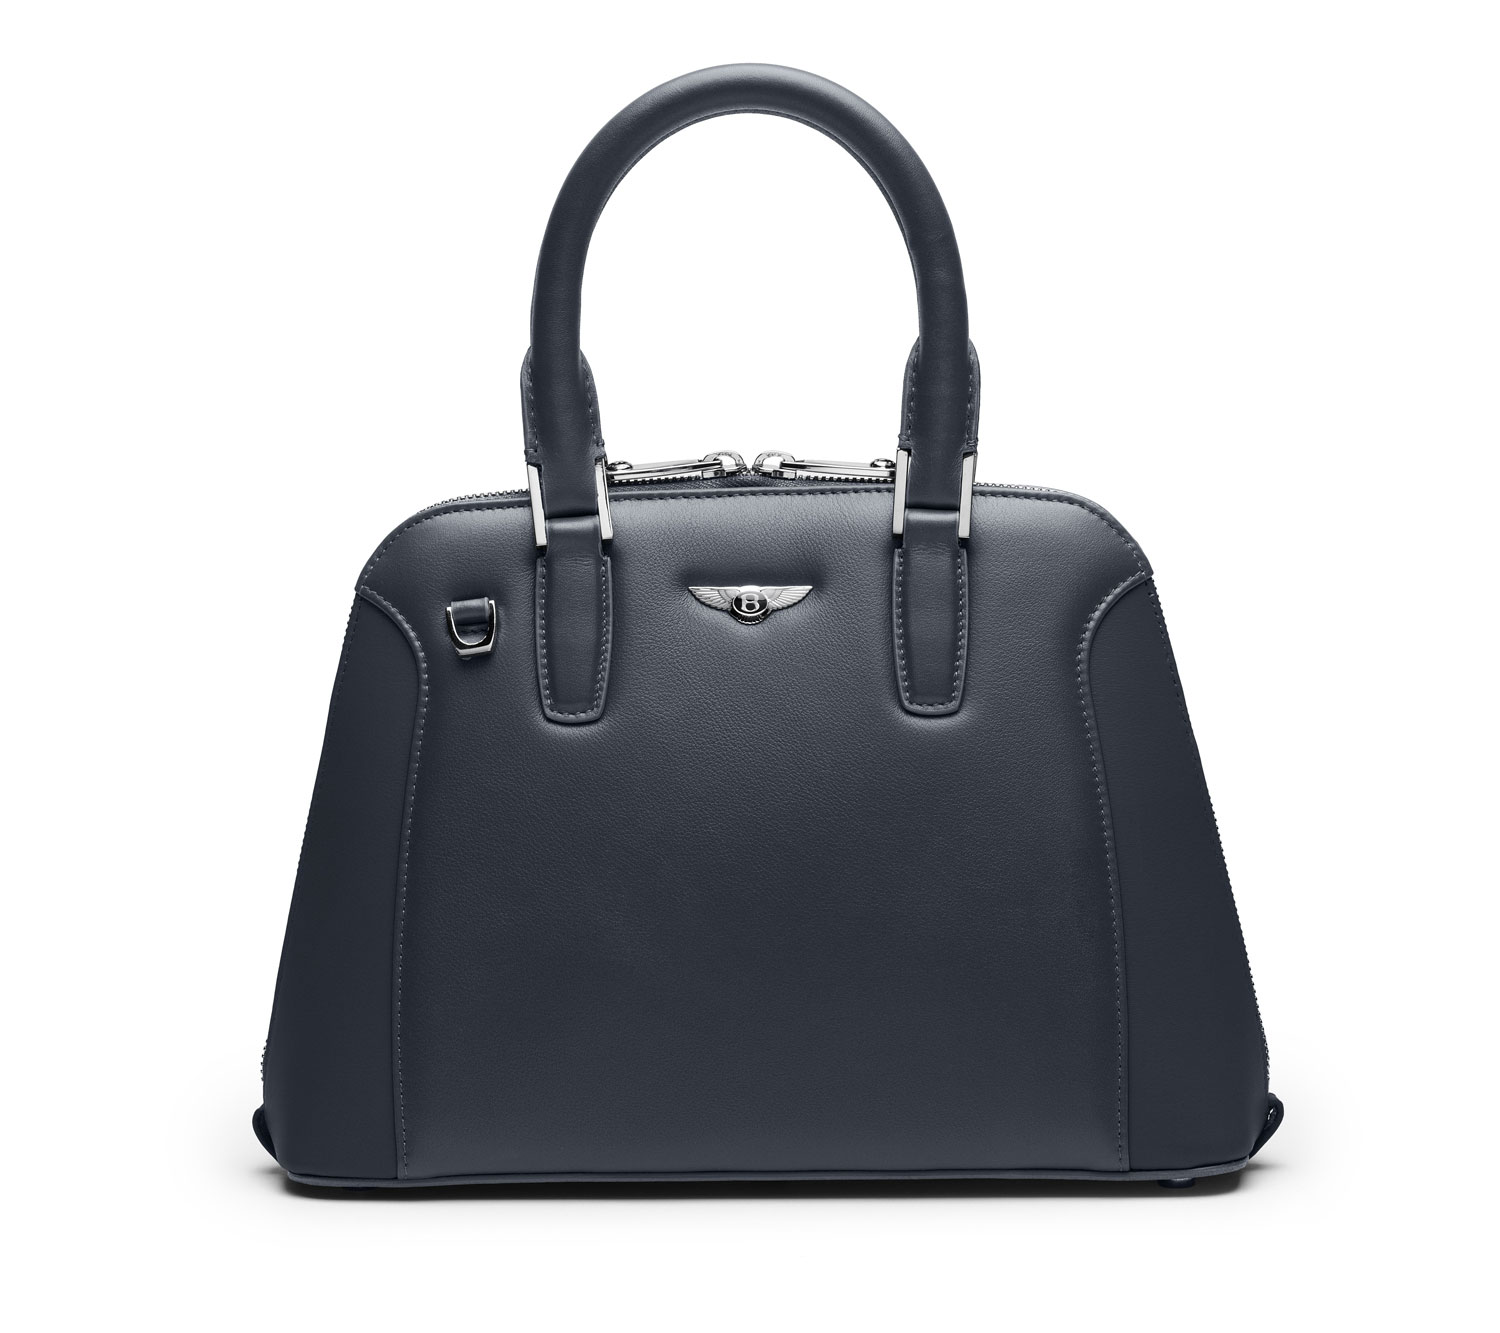 The Continental handbag, named after the iconic Bentley GT